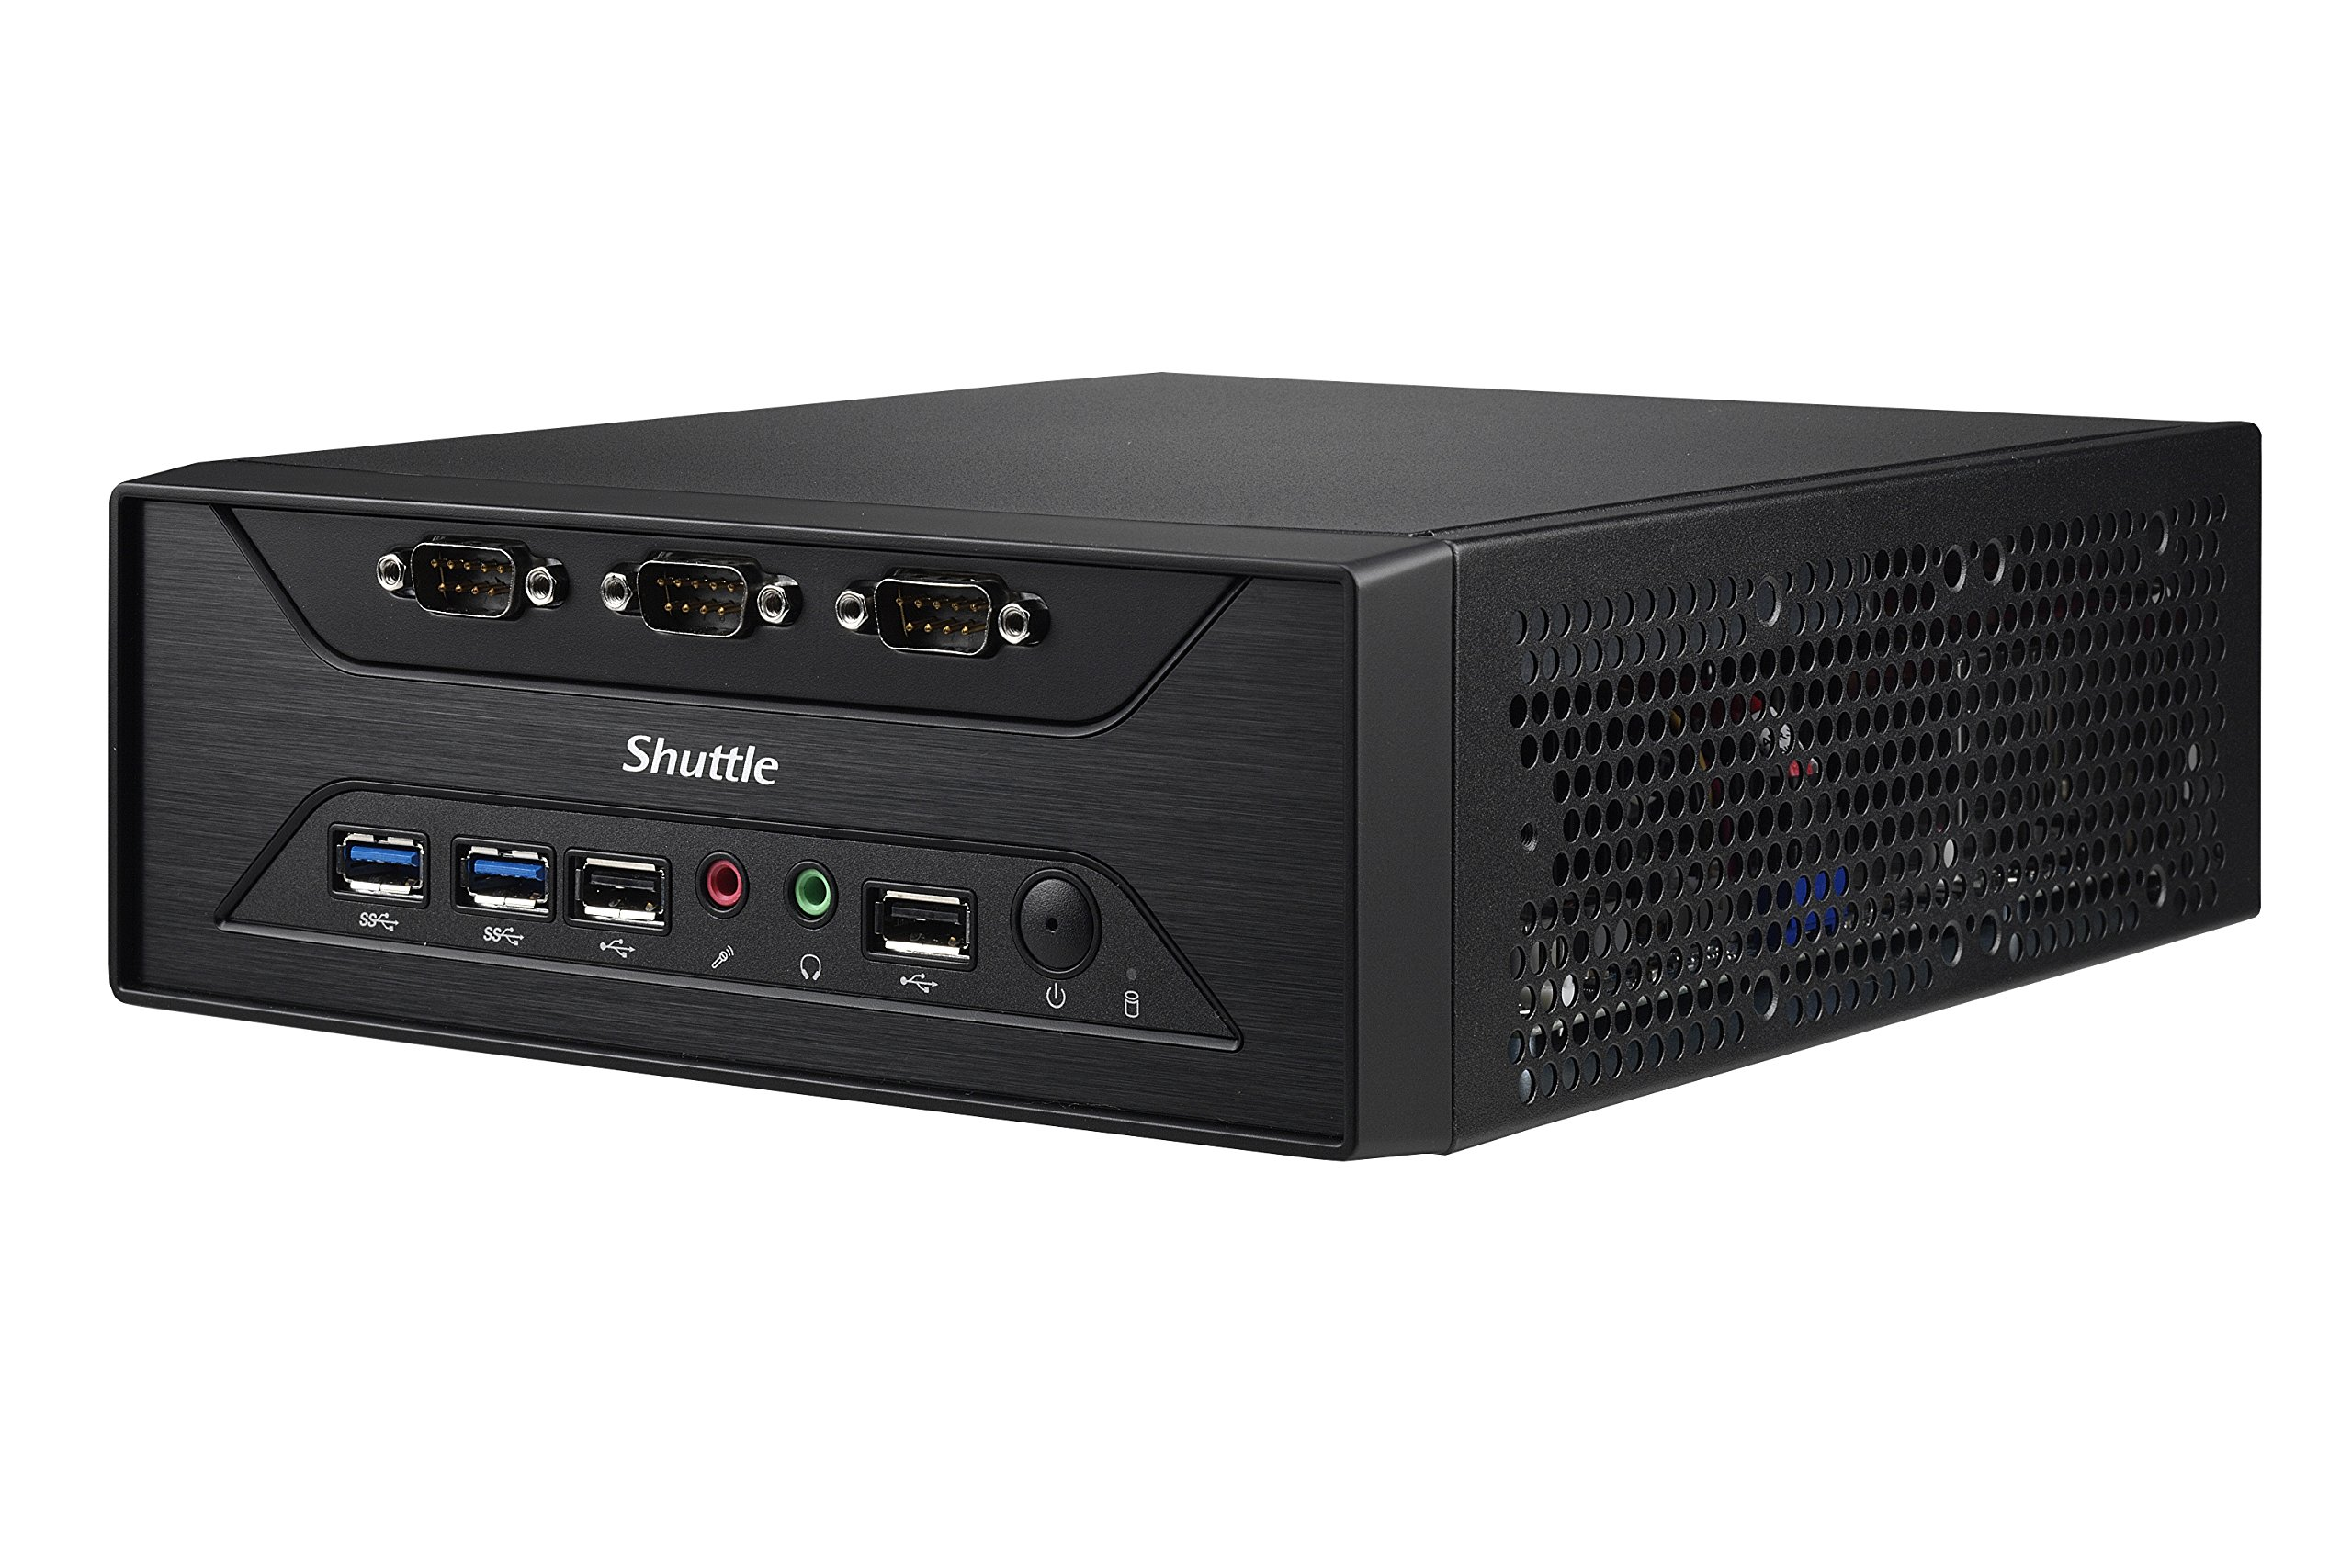 Shuttle XPC Slim XC60J Intel Celeron J3355, 8 x COM Ports, Support SODIMM DDR3L (Max. 16GB), Include Heatpipe Cooling Module by Shuttle (Image #2)